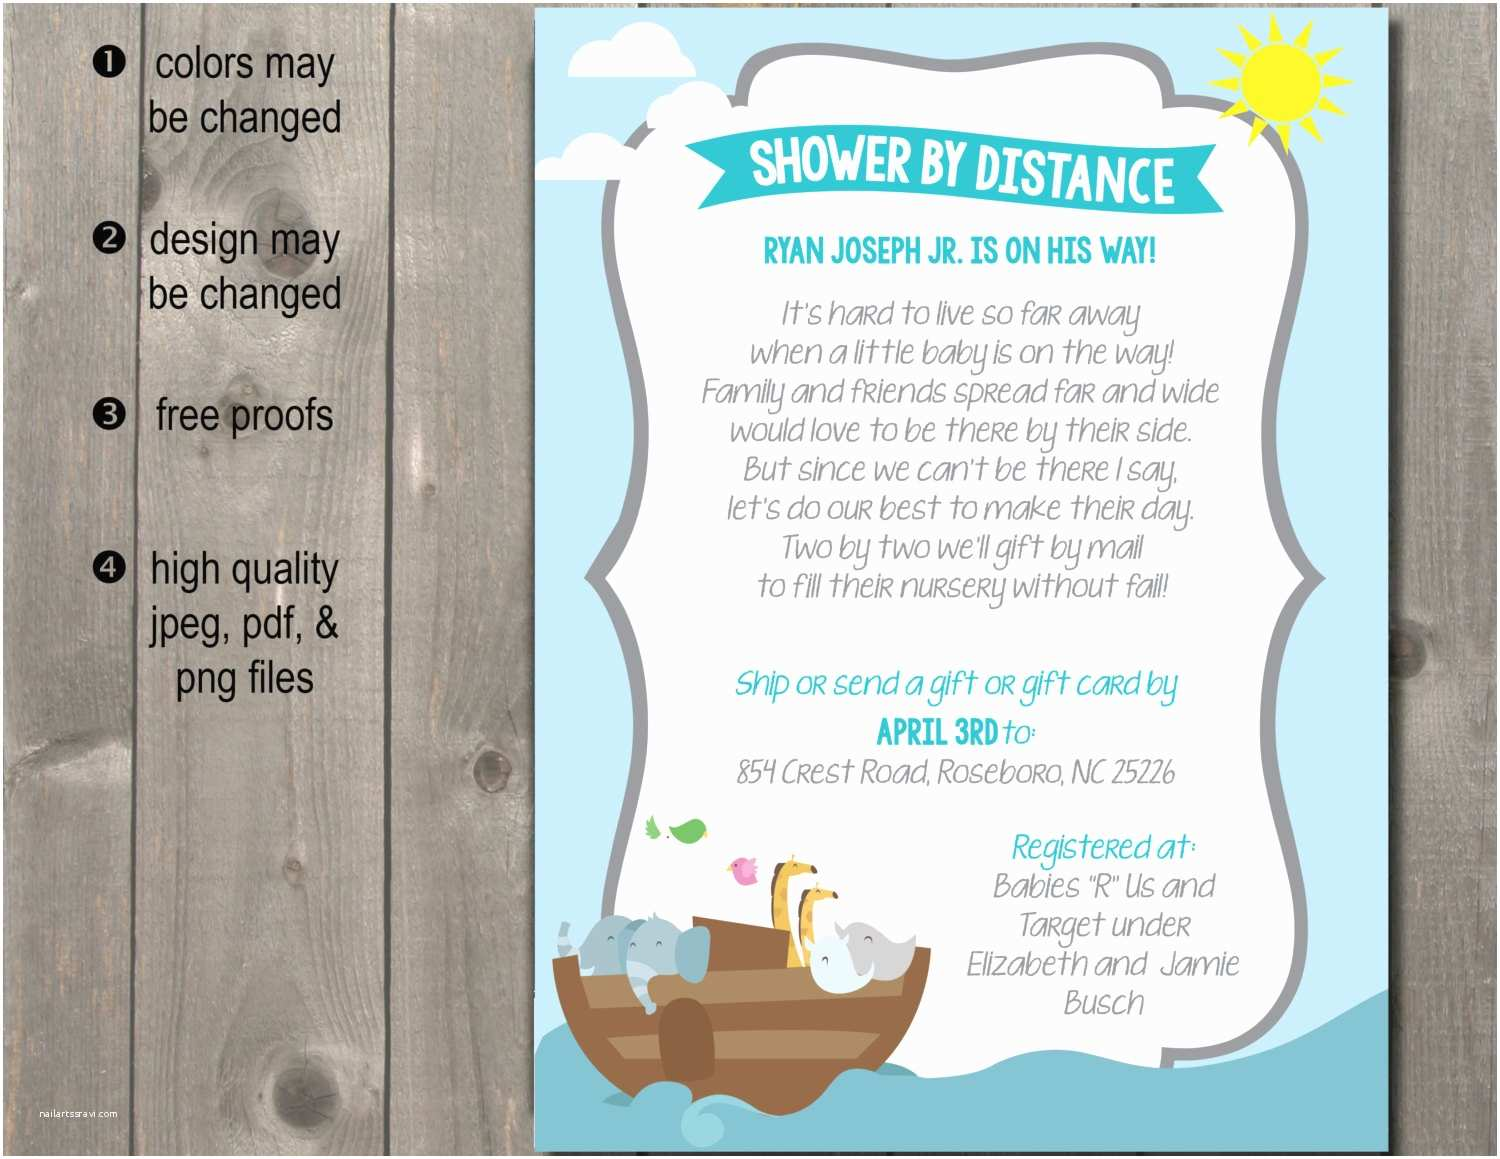 Long Distance Baby Shower Invitations Long Distance Baby Shower Invitation Announcement Shower by